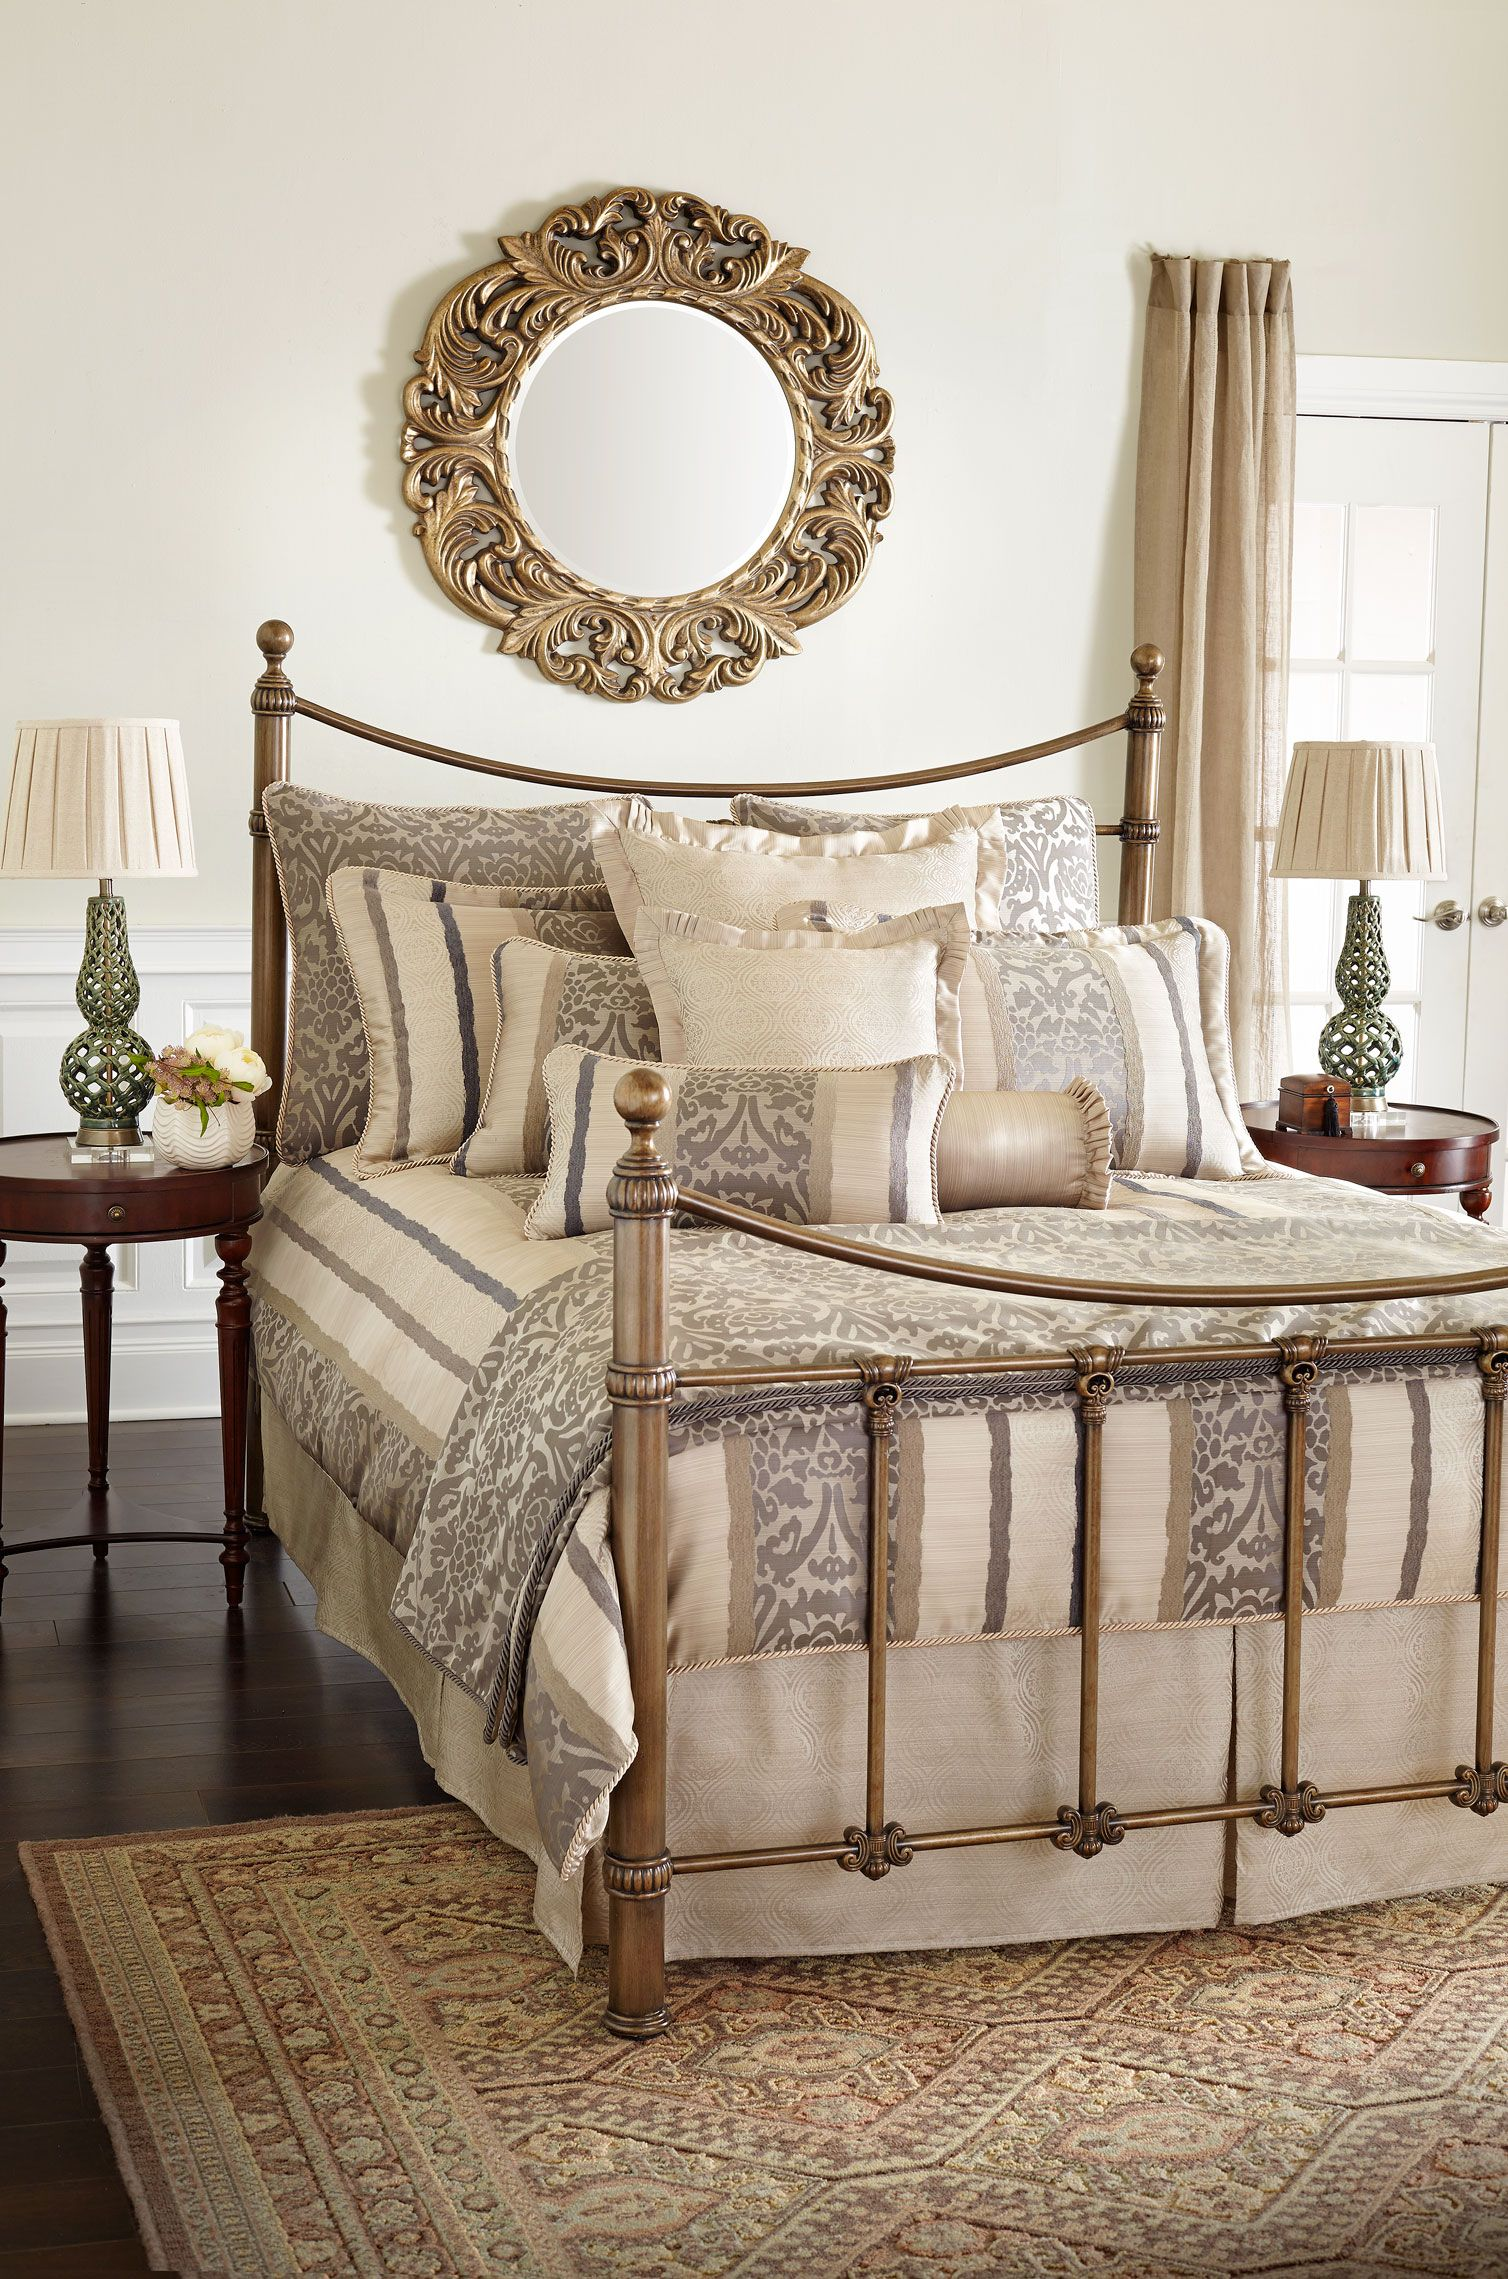 Finley bed bombay canada rest in peace bedrooms pinterest finley bed bombay canada jeuxipadfo Gallery